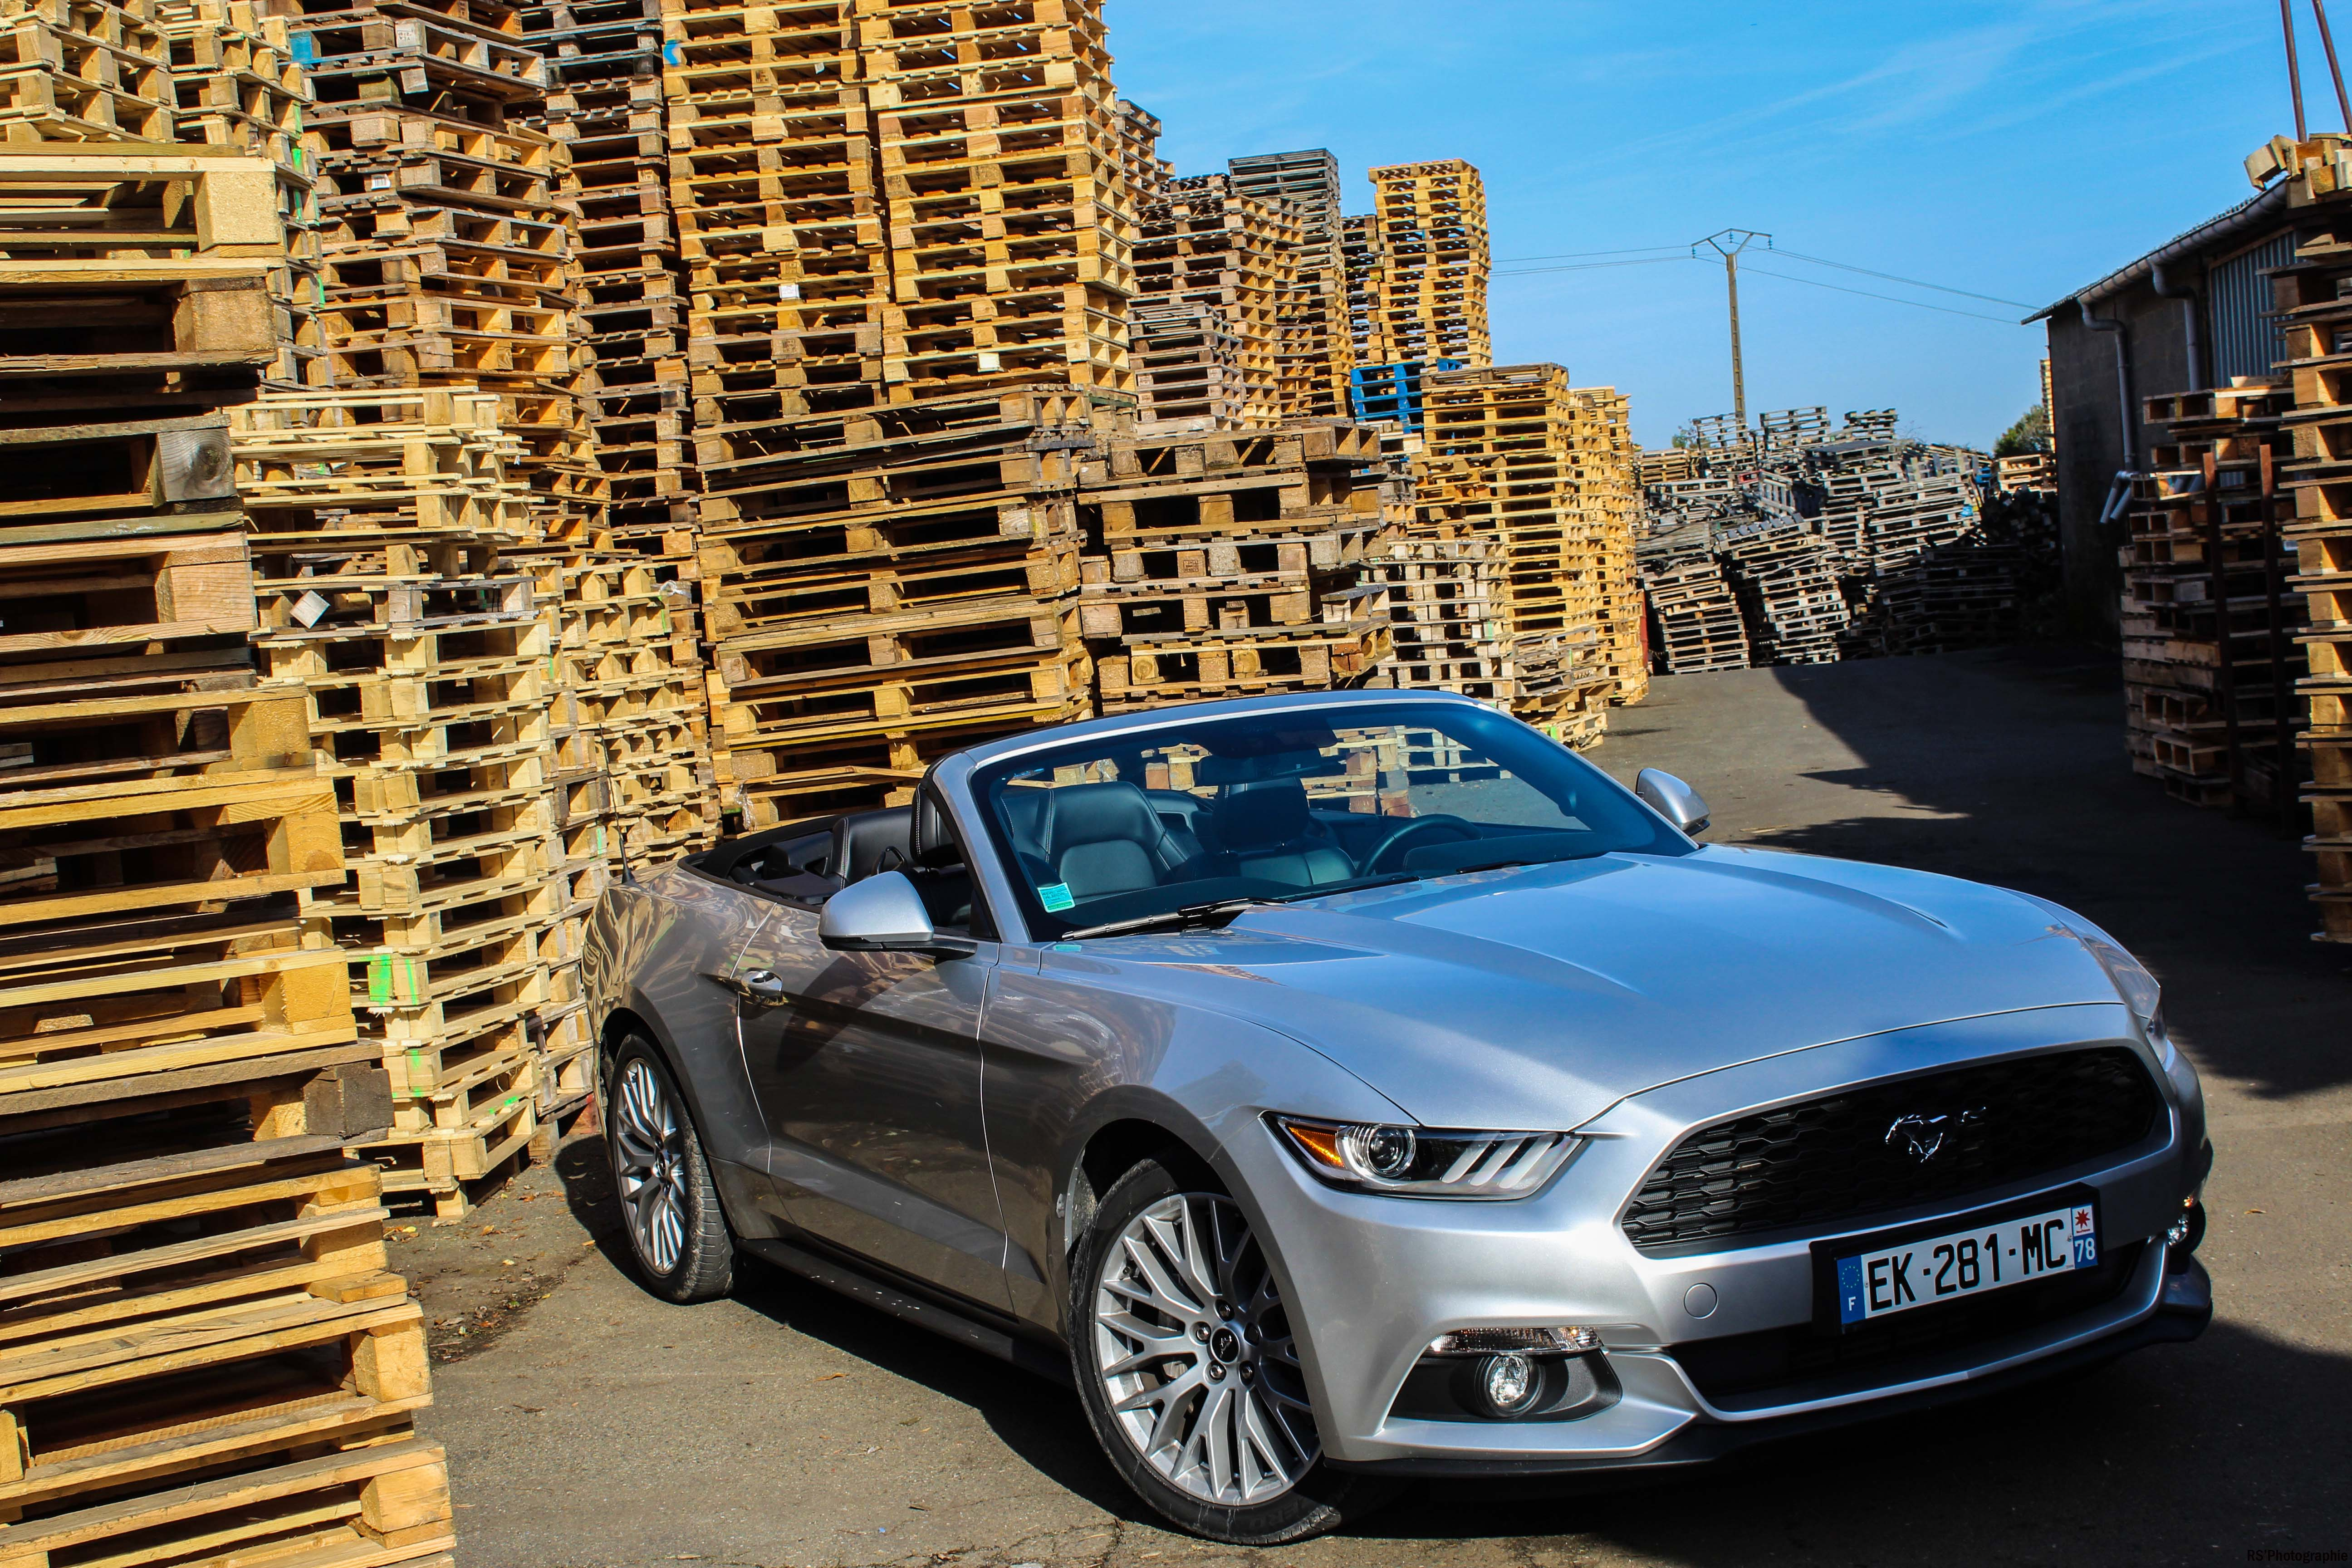 fordmustangeconvertible1-ford-mustang-convertible-ecoboost-avant-front-Arnaud Demasier-RSPhotographie